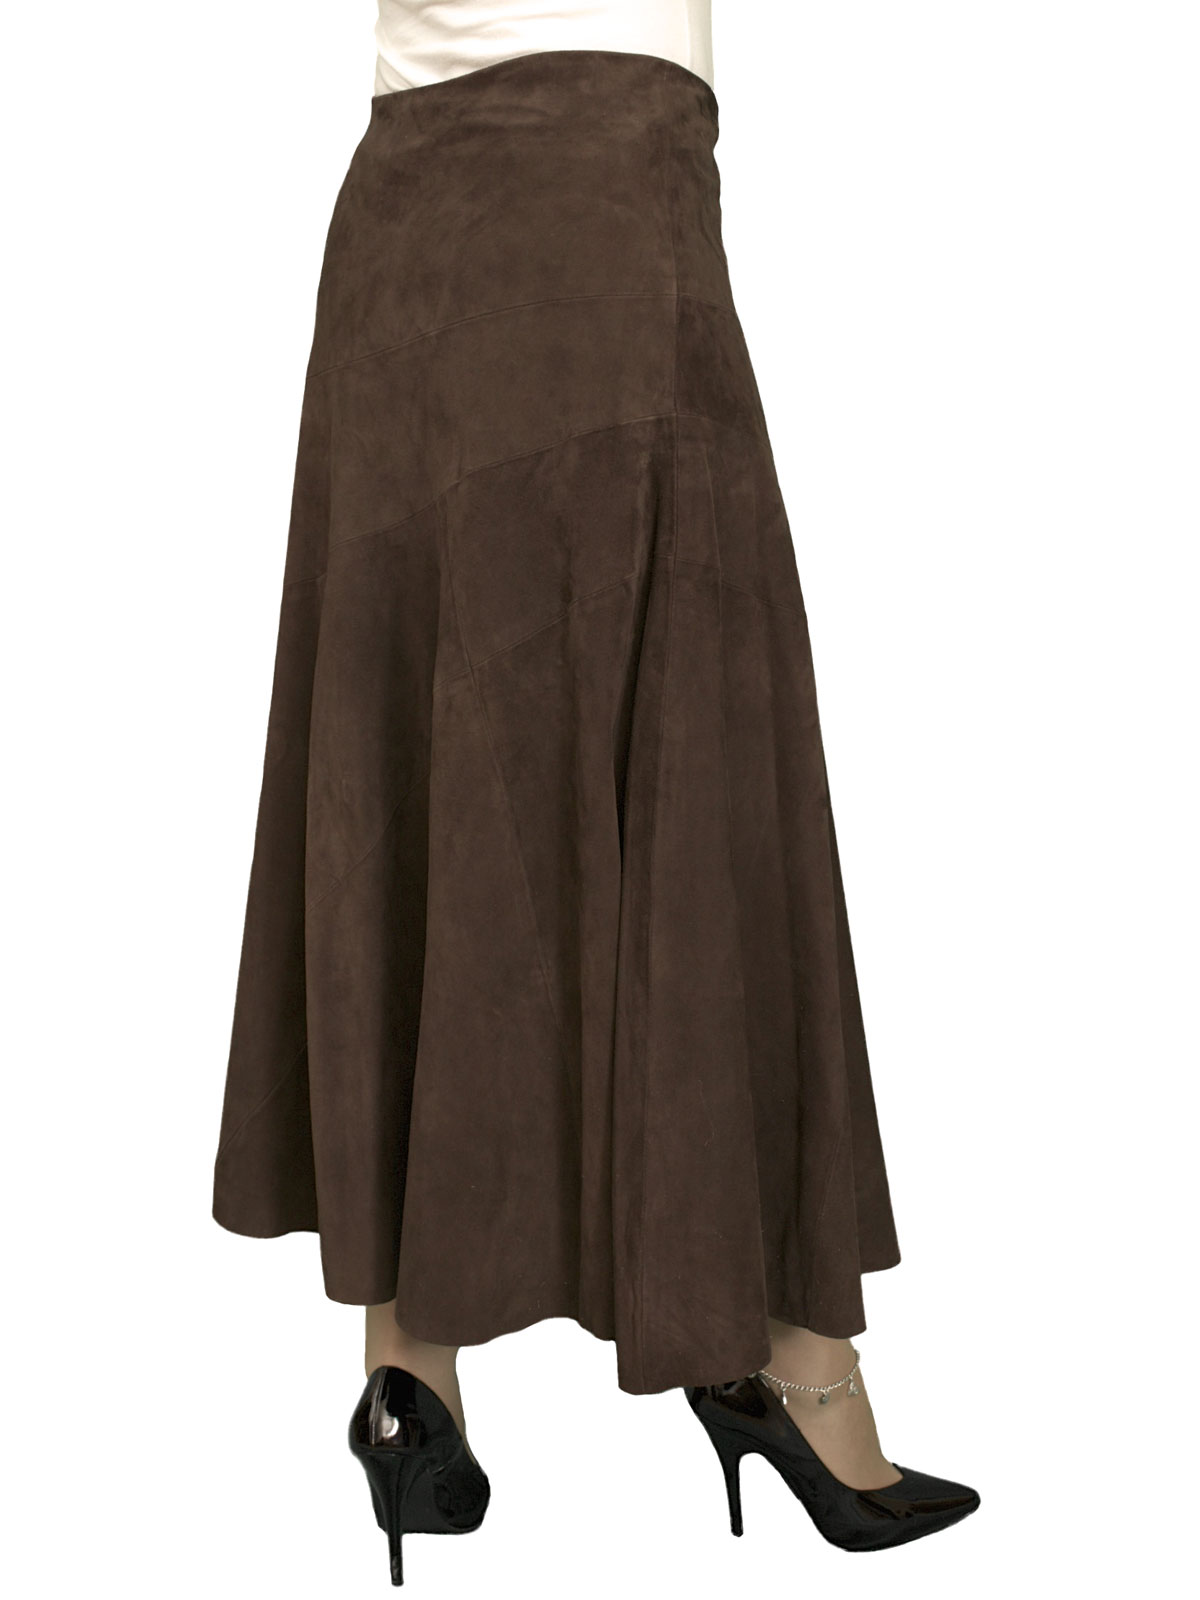 Find Brown long skirts at ShopStyle. Shop the latest collection of Brown long skirts from the most popular stores - all in one place.